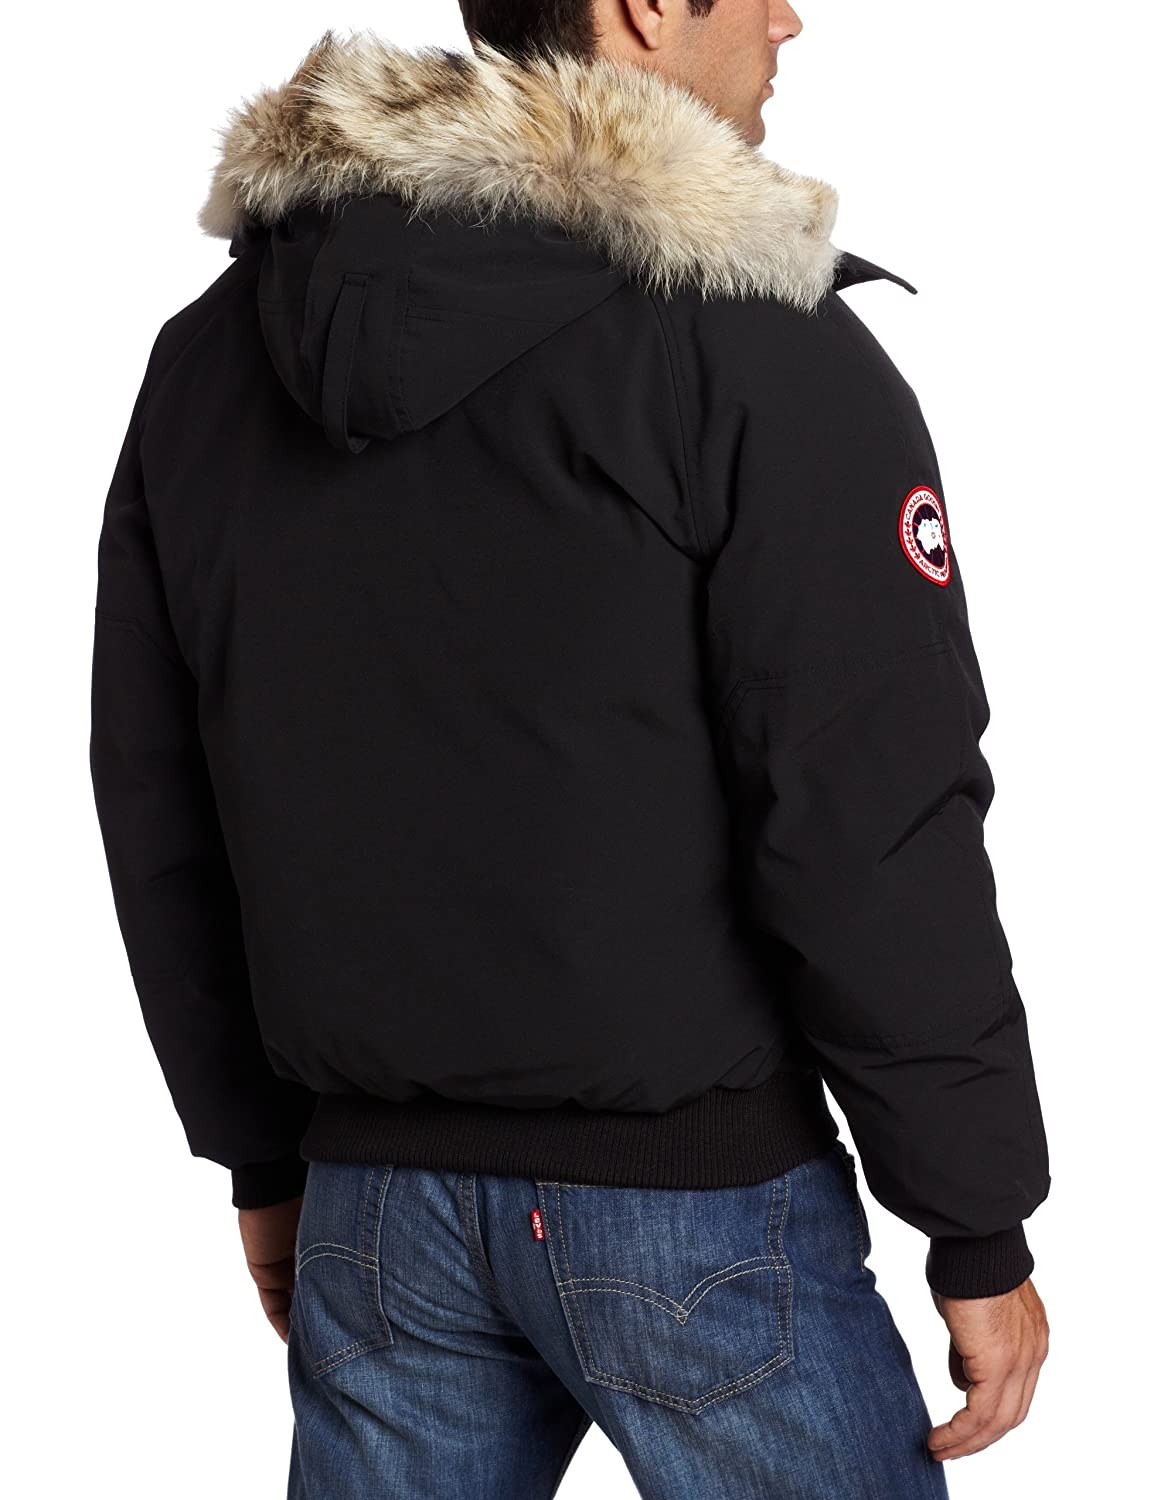 Canada Goose langford parka online price - Amazon.com: Canada Goose Men's Chilliwack Front-Zip Jacket with ...